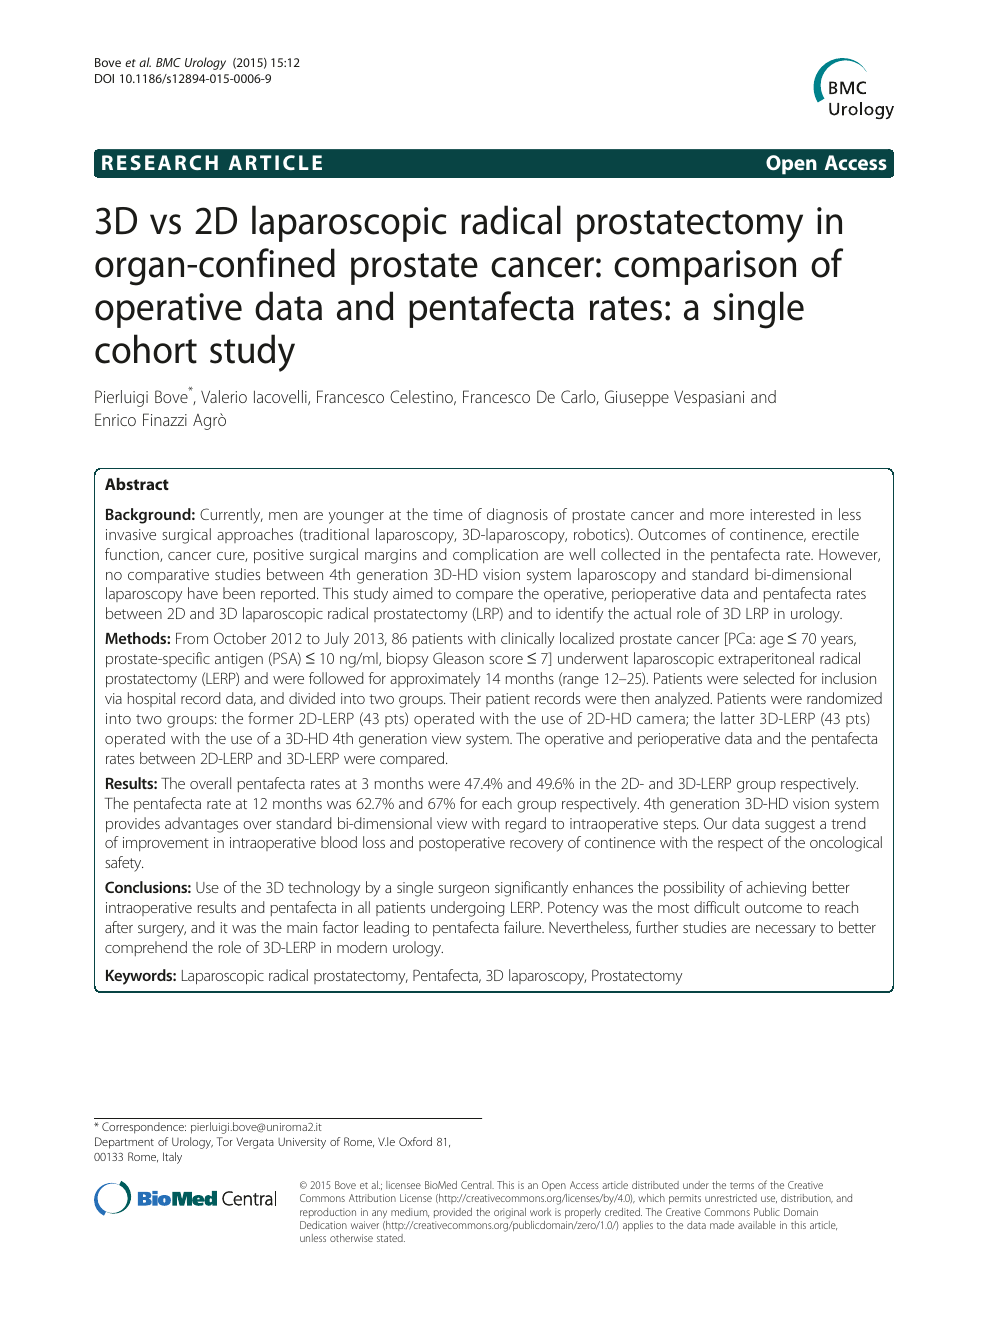 3d Vs 2d Laparoscopic Radical Prostatectomy In Organ Confined